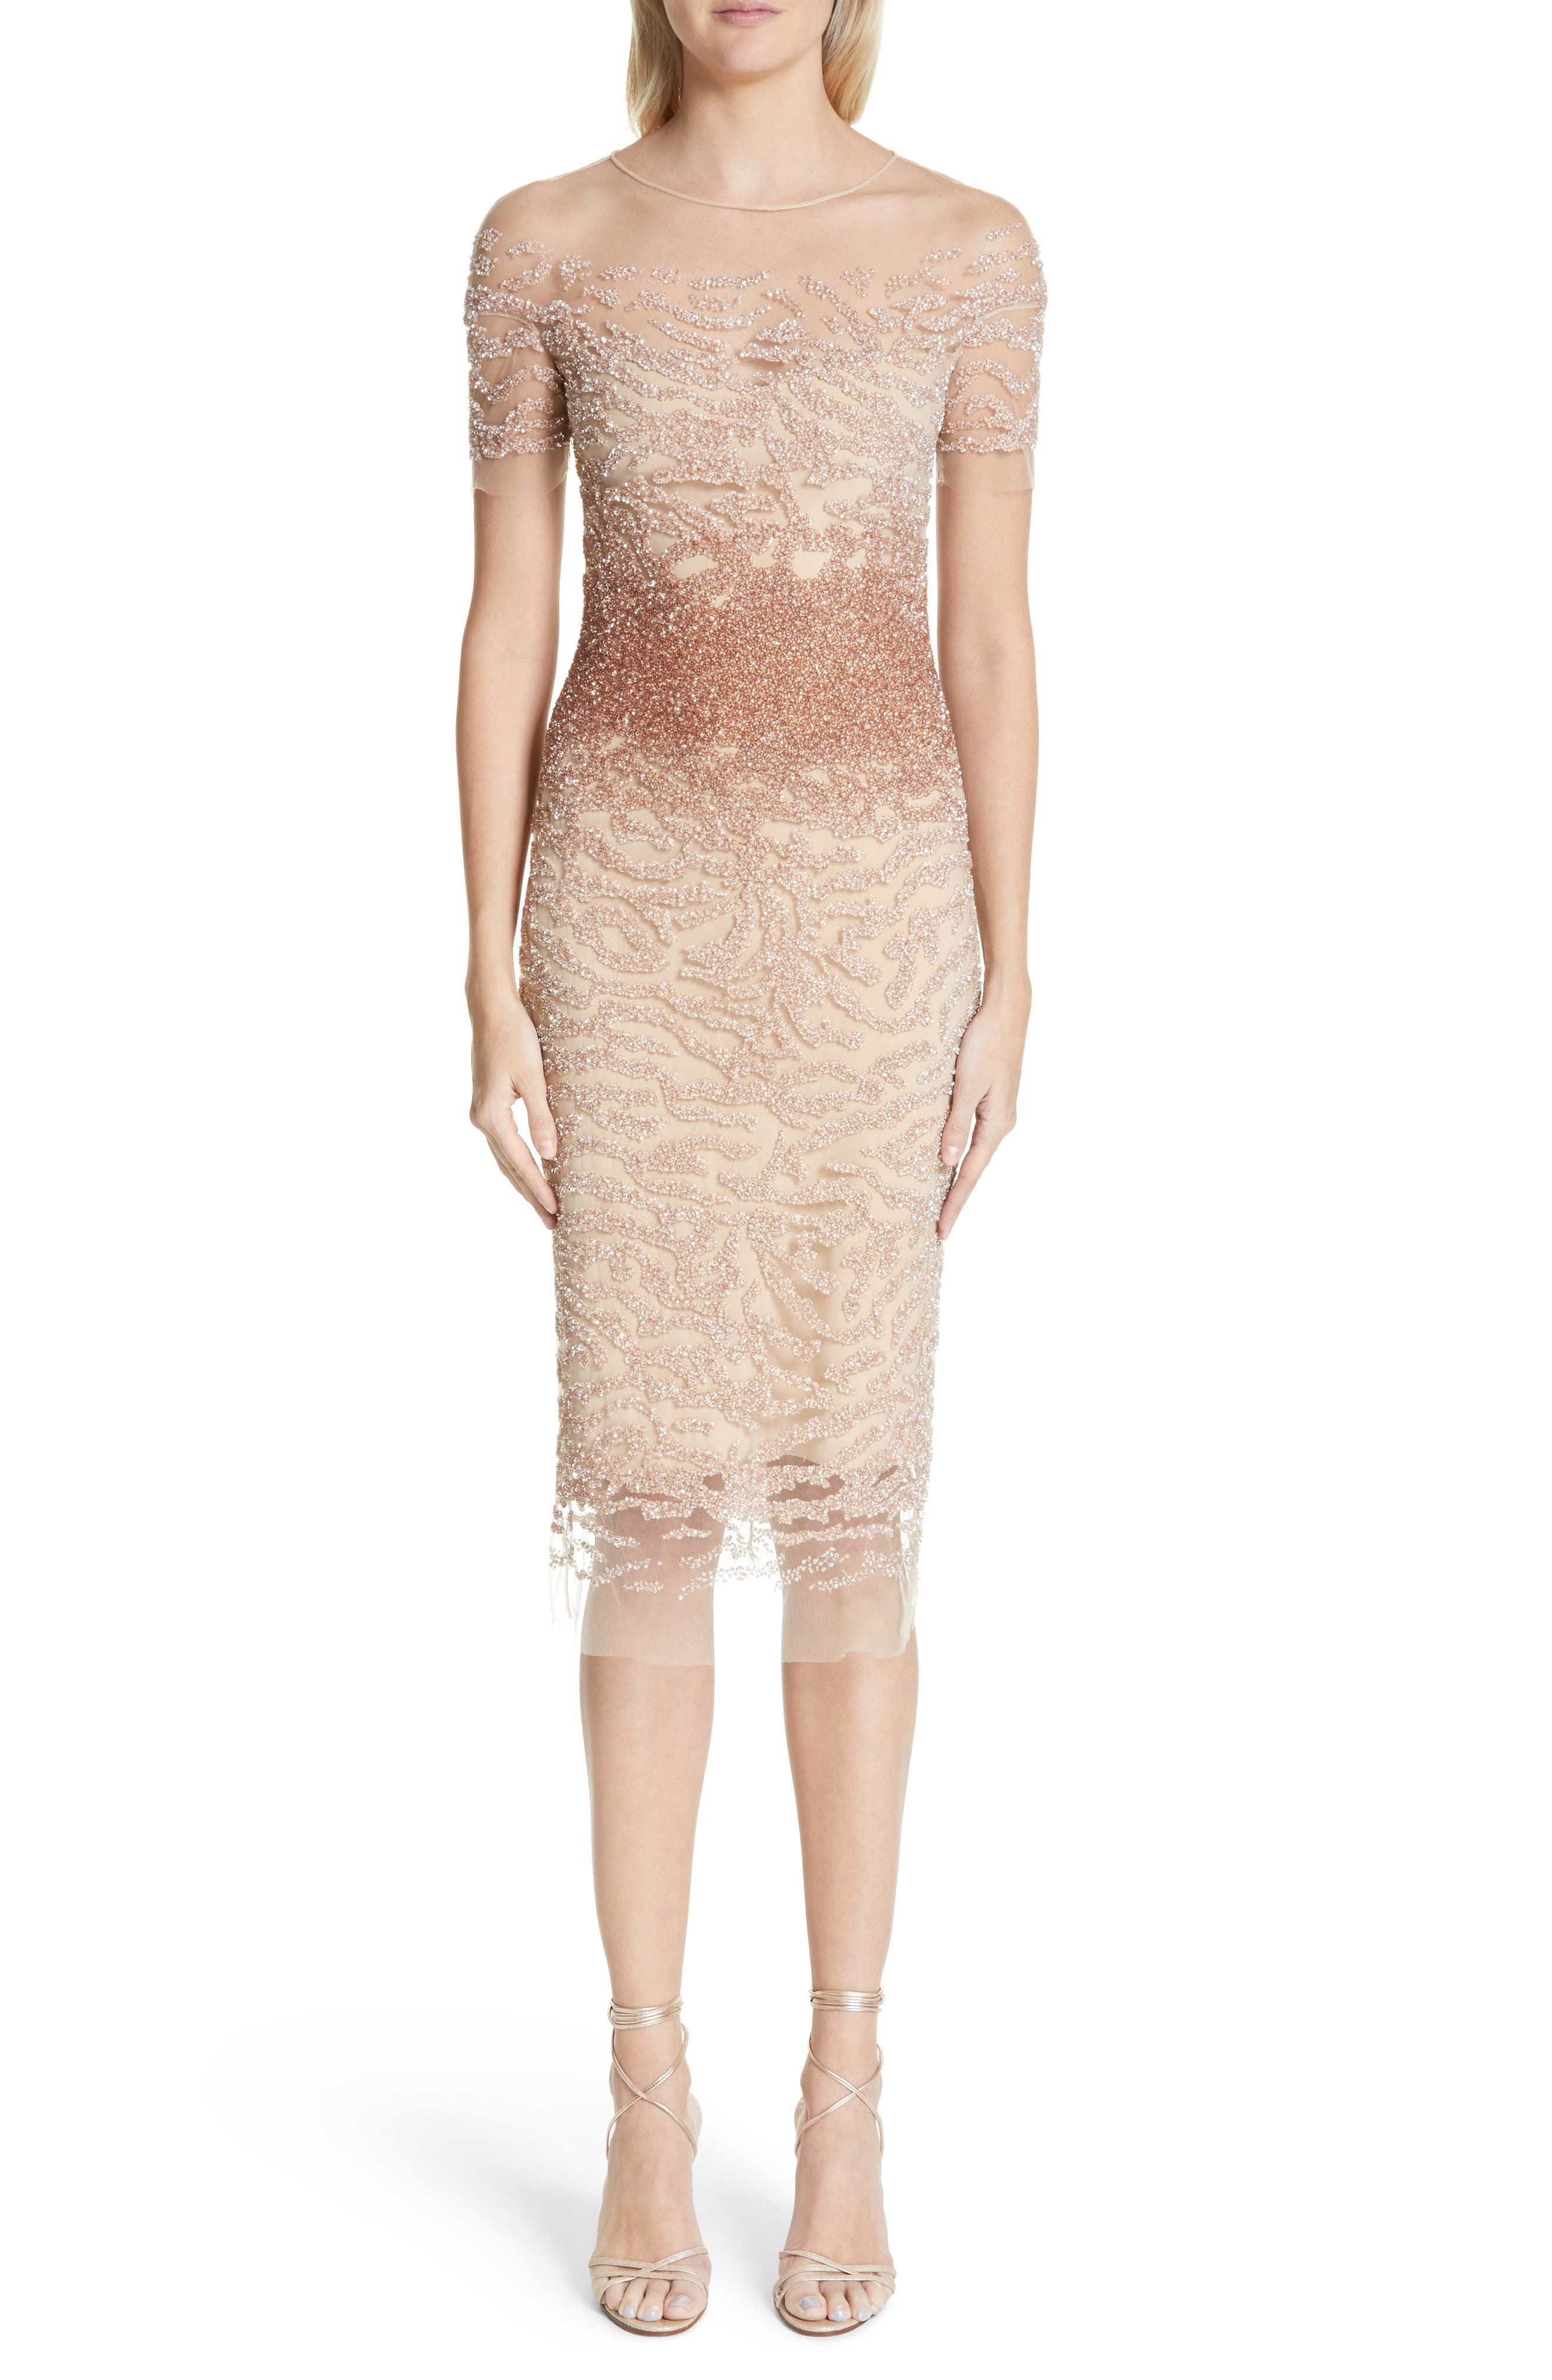 Alternate Image 1 Selected - Pamella Roland Beaded Illusion Dress